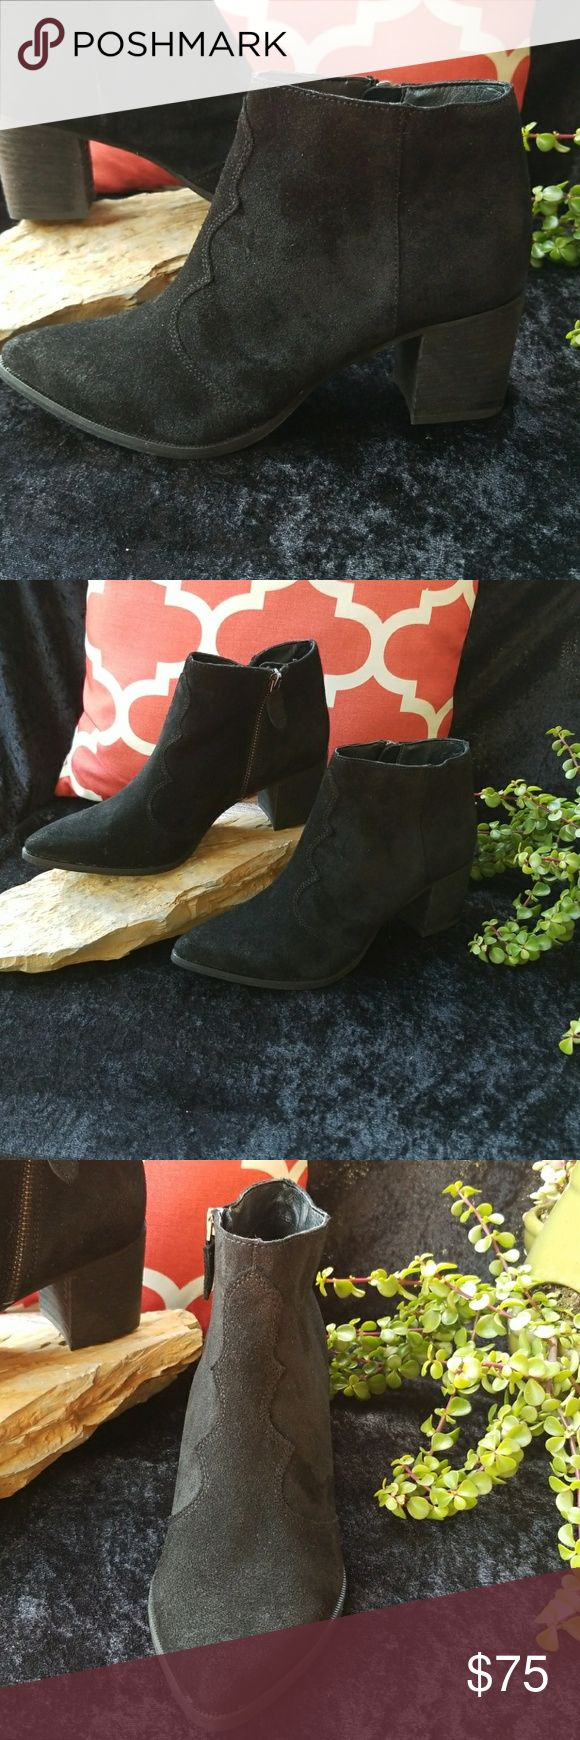 """Dolce Vita Block Heel Western Bootie New. Never Worn (No box). True to size black suede Dolce Vita Block Heel Western Bootie with an easy side zip closure.  Approximate measurements: Shaft: 4"""" Heel: 2 1/2"""" Dolce Vita Shoes Ankle Boots & Booties"""